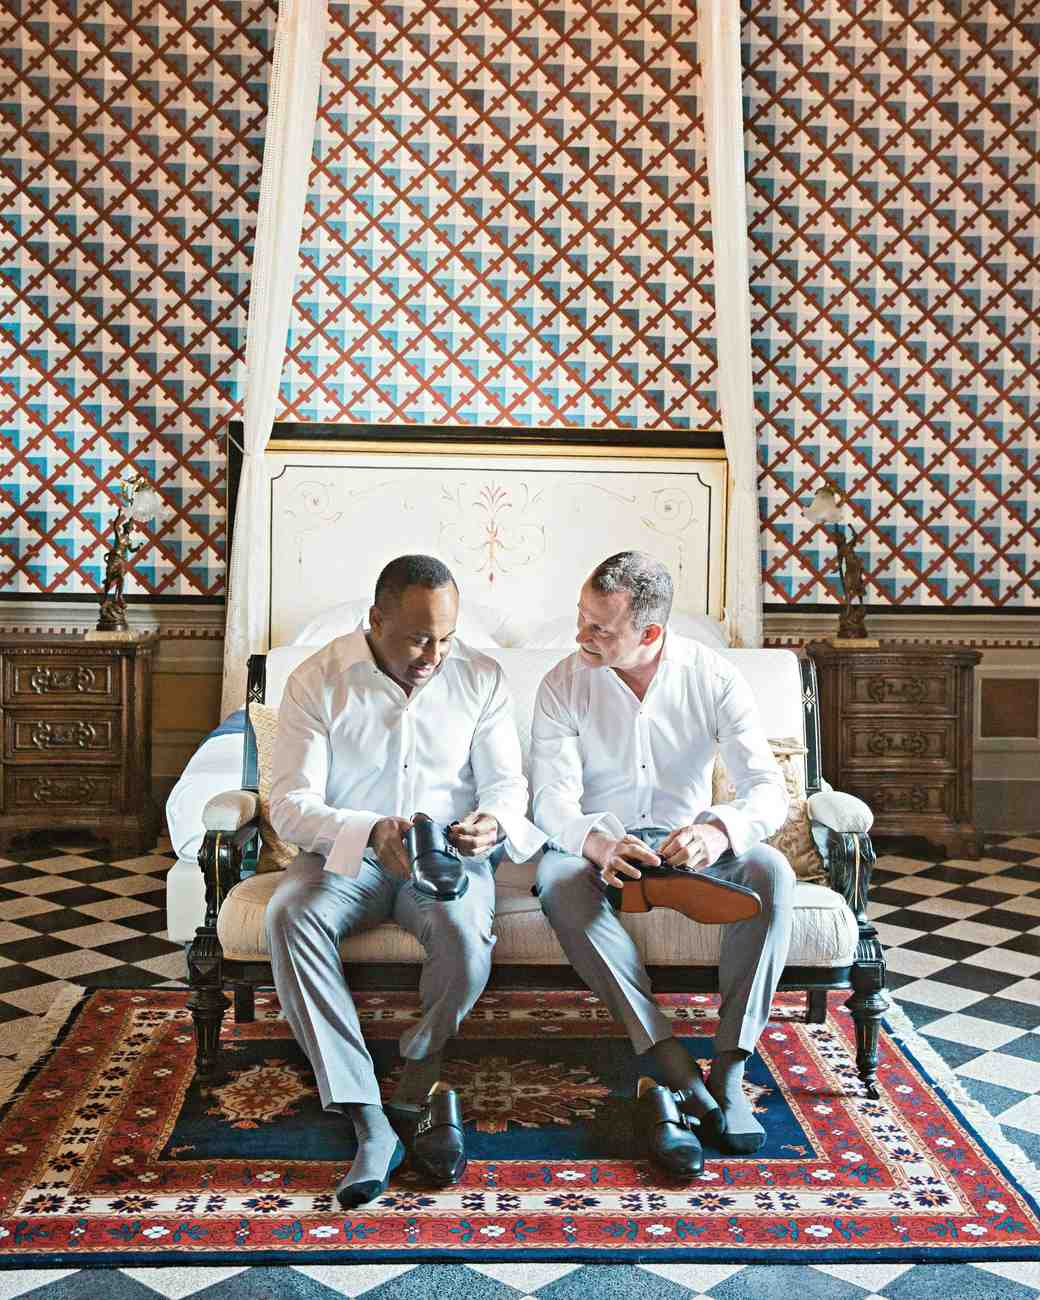 dennis-bryan-wedding-italy-grooms-getting-ready-suite-putting-shoes-on-088-0302-s112633.jpg